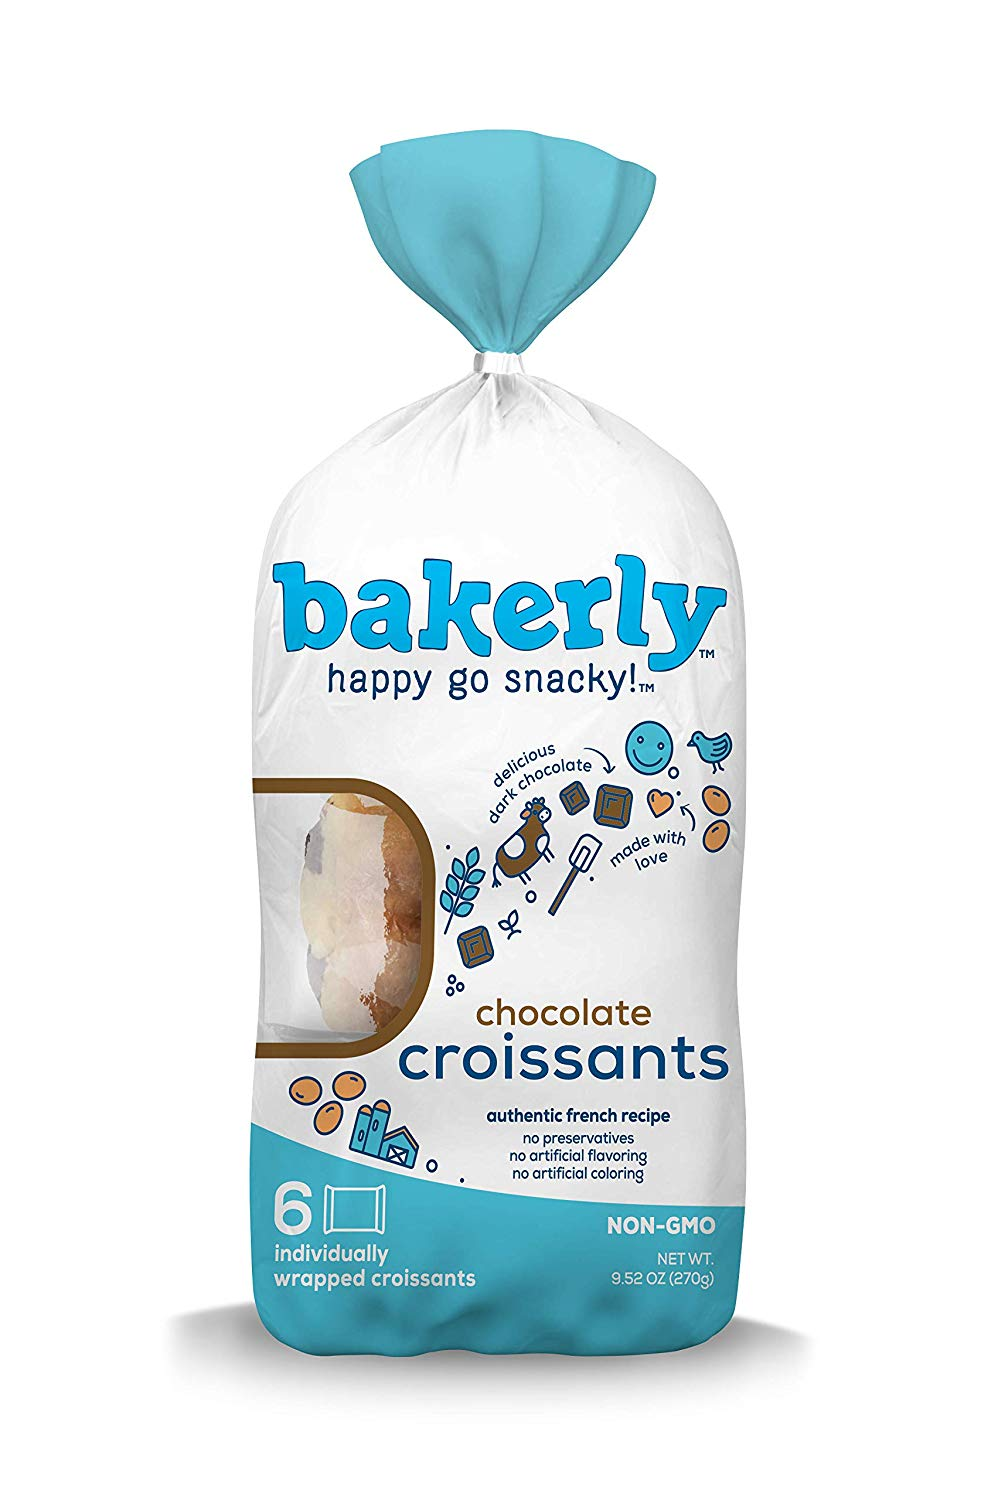 Bakerly Chocolate Croissants, 6 ct (Case of 8)